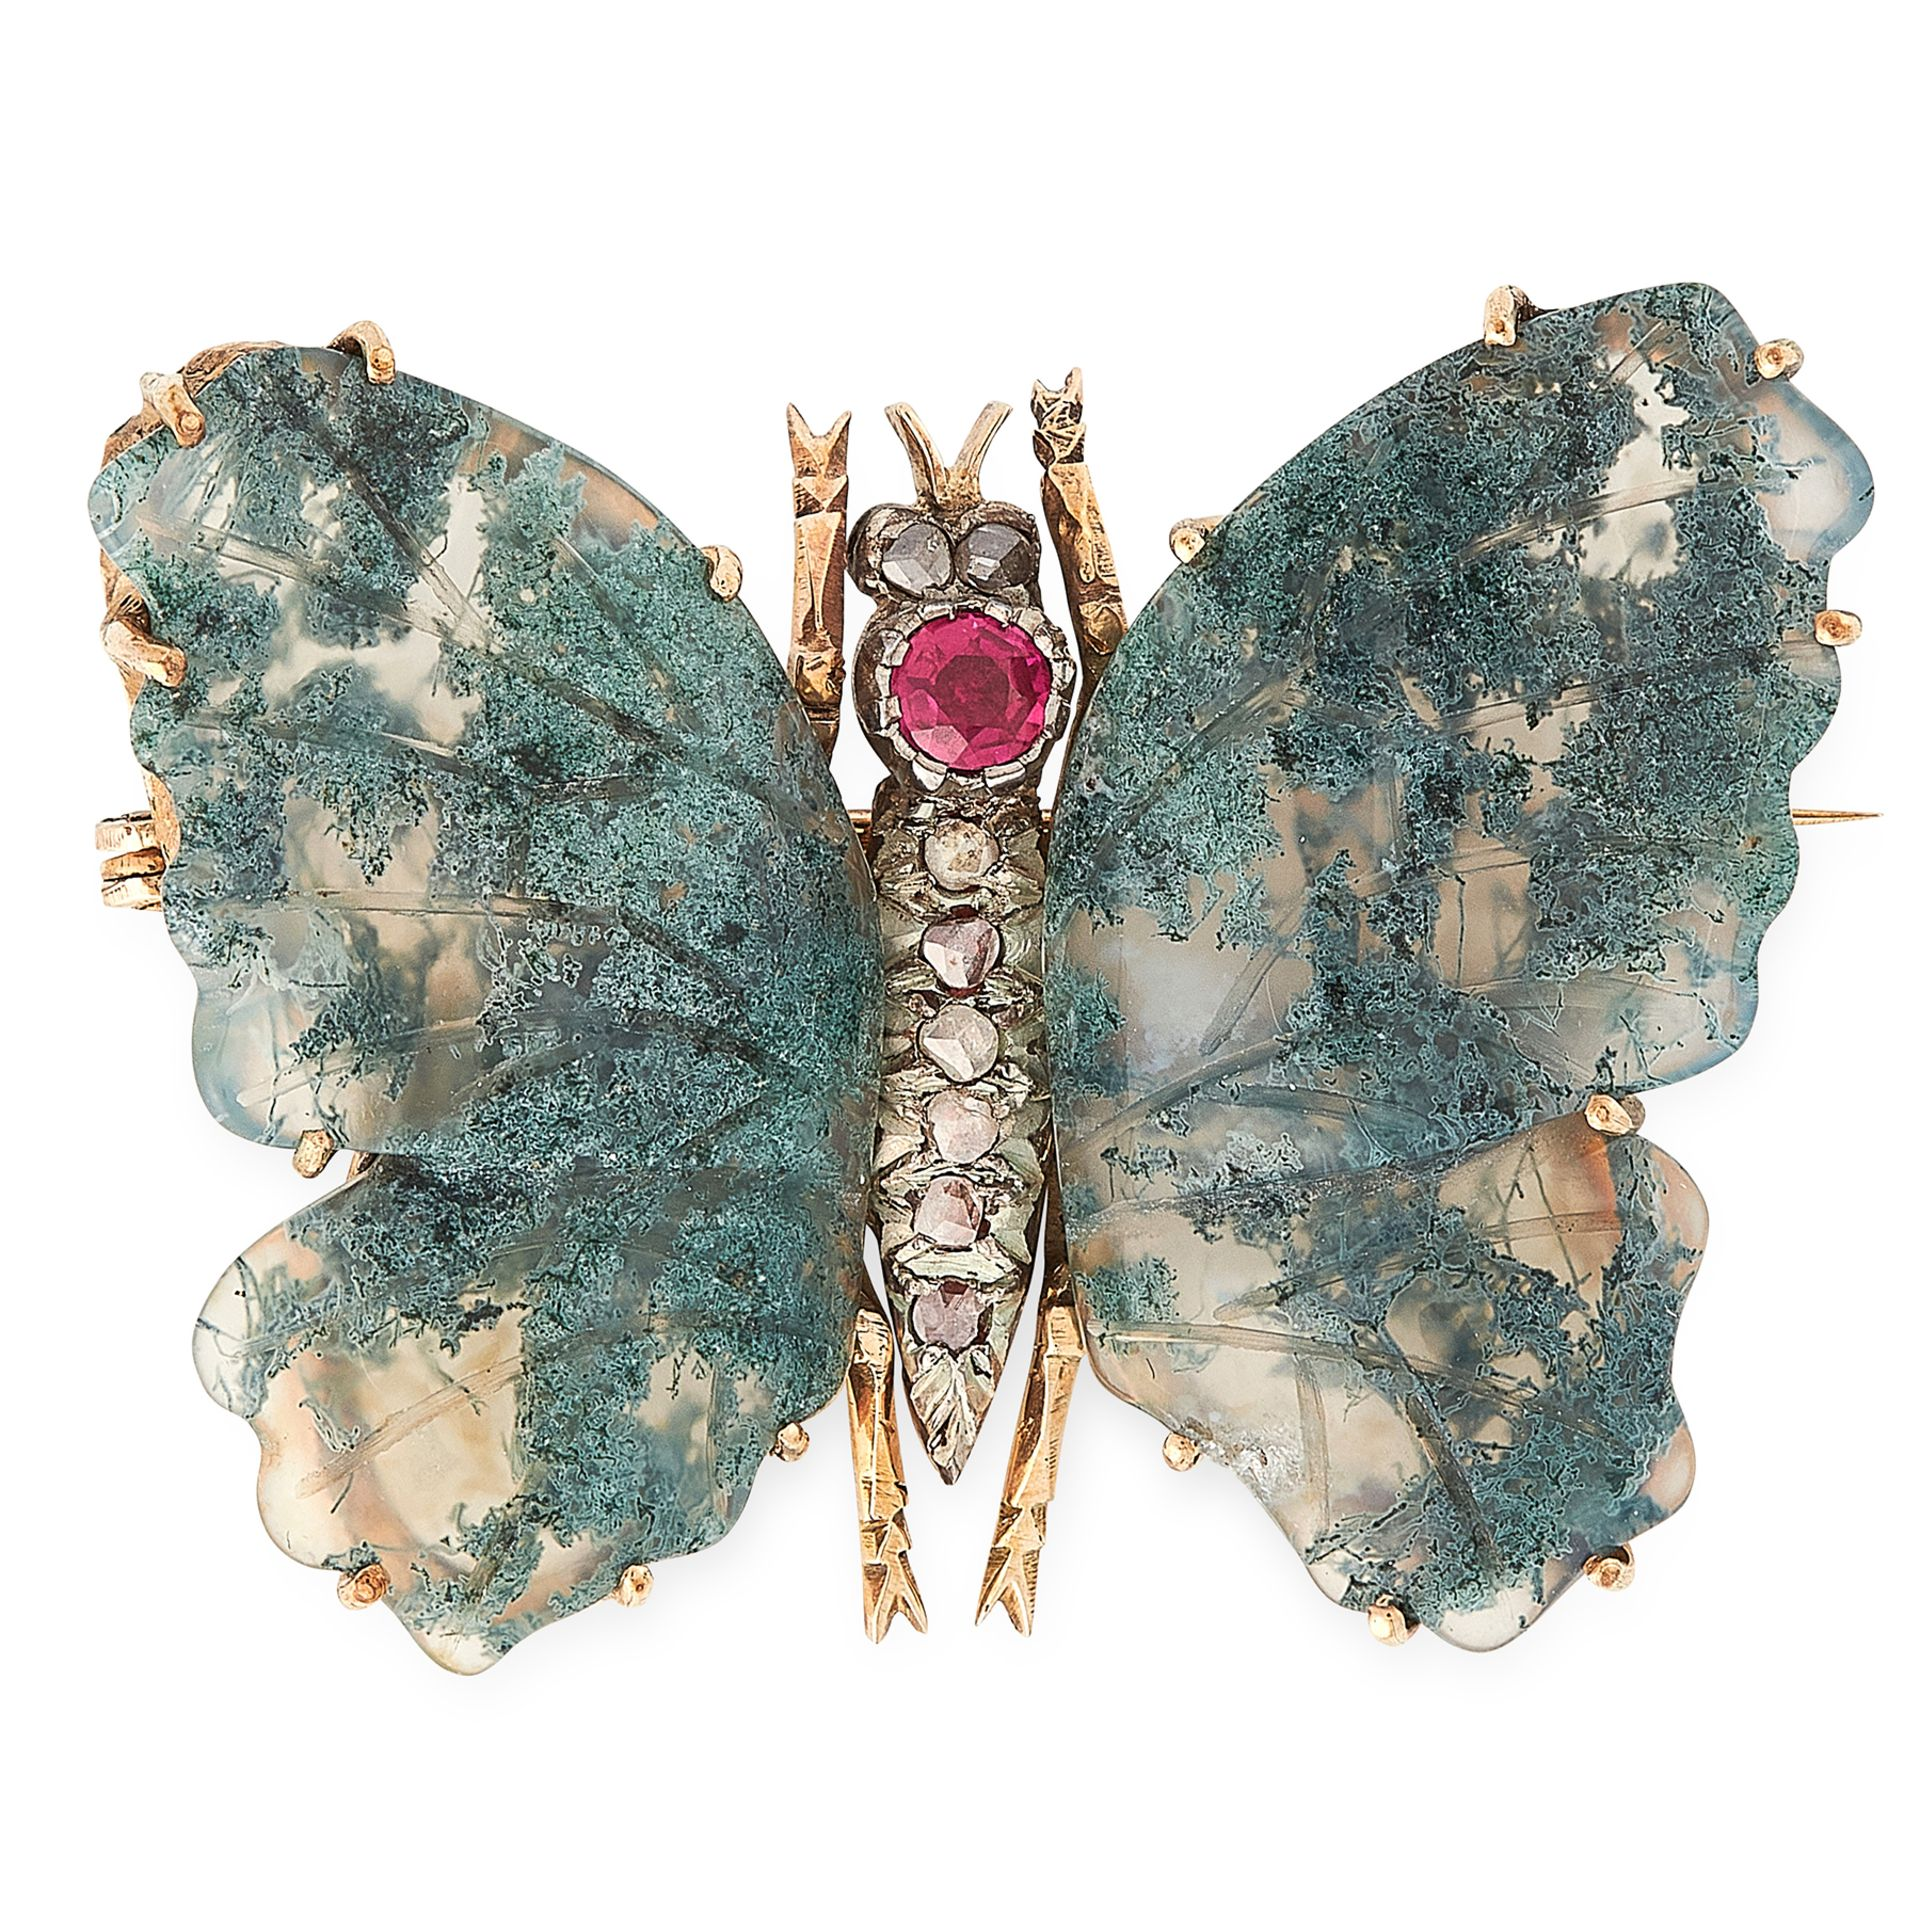 Los 16 - AN ANTIQUE MOSS AGATE, RUBY AND DIAMOND BUTTERFLY BROOCH in yellow gold and silver, designed as a